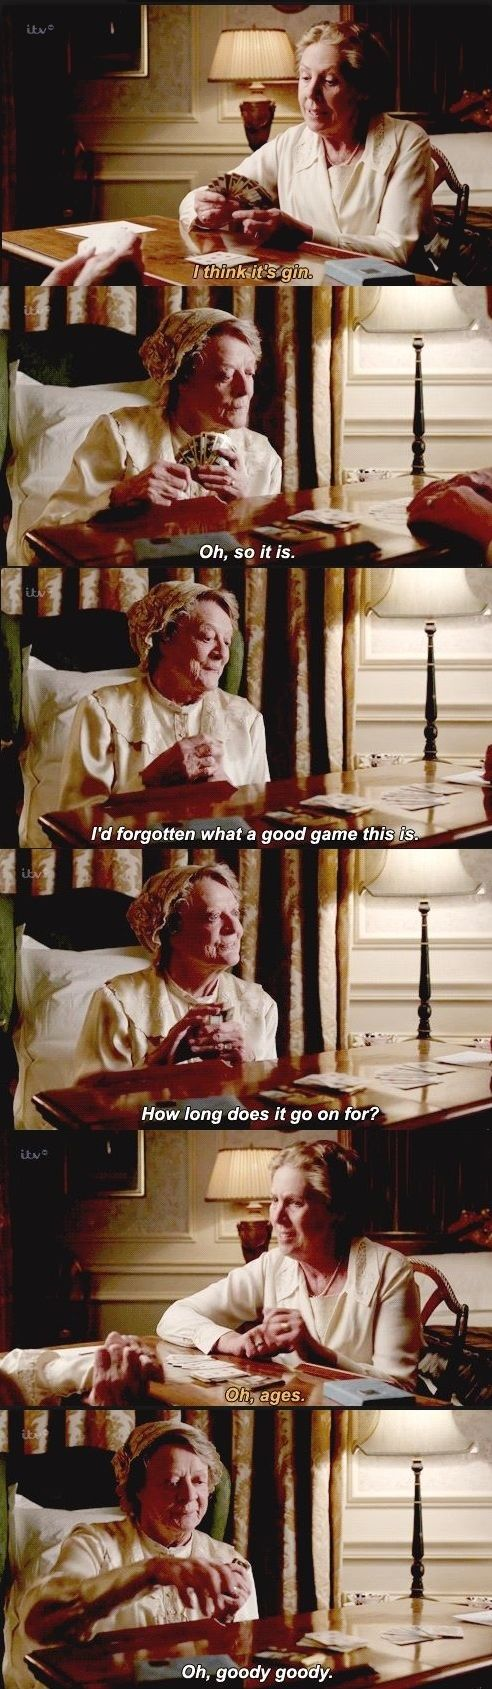 Downton Abbey season 4: Violet and Isobel playing gin rummy when Violet's sick and Isobel's taking care of her. So sweet.